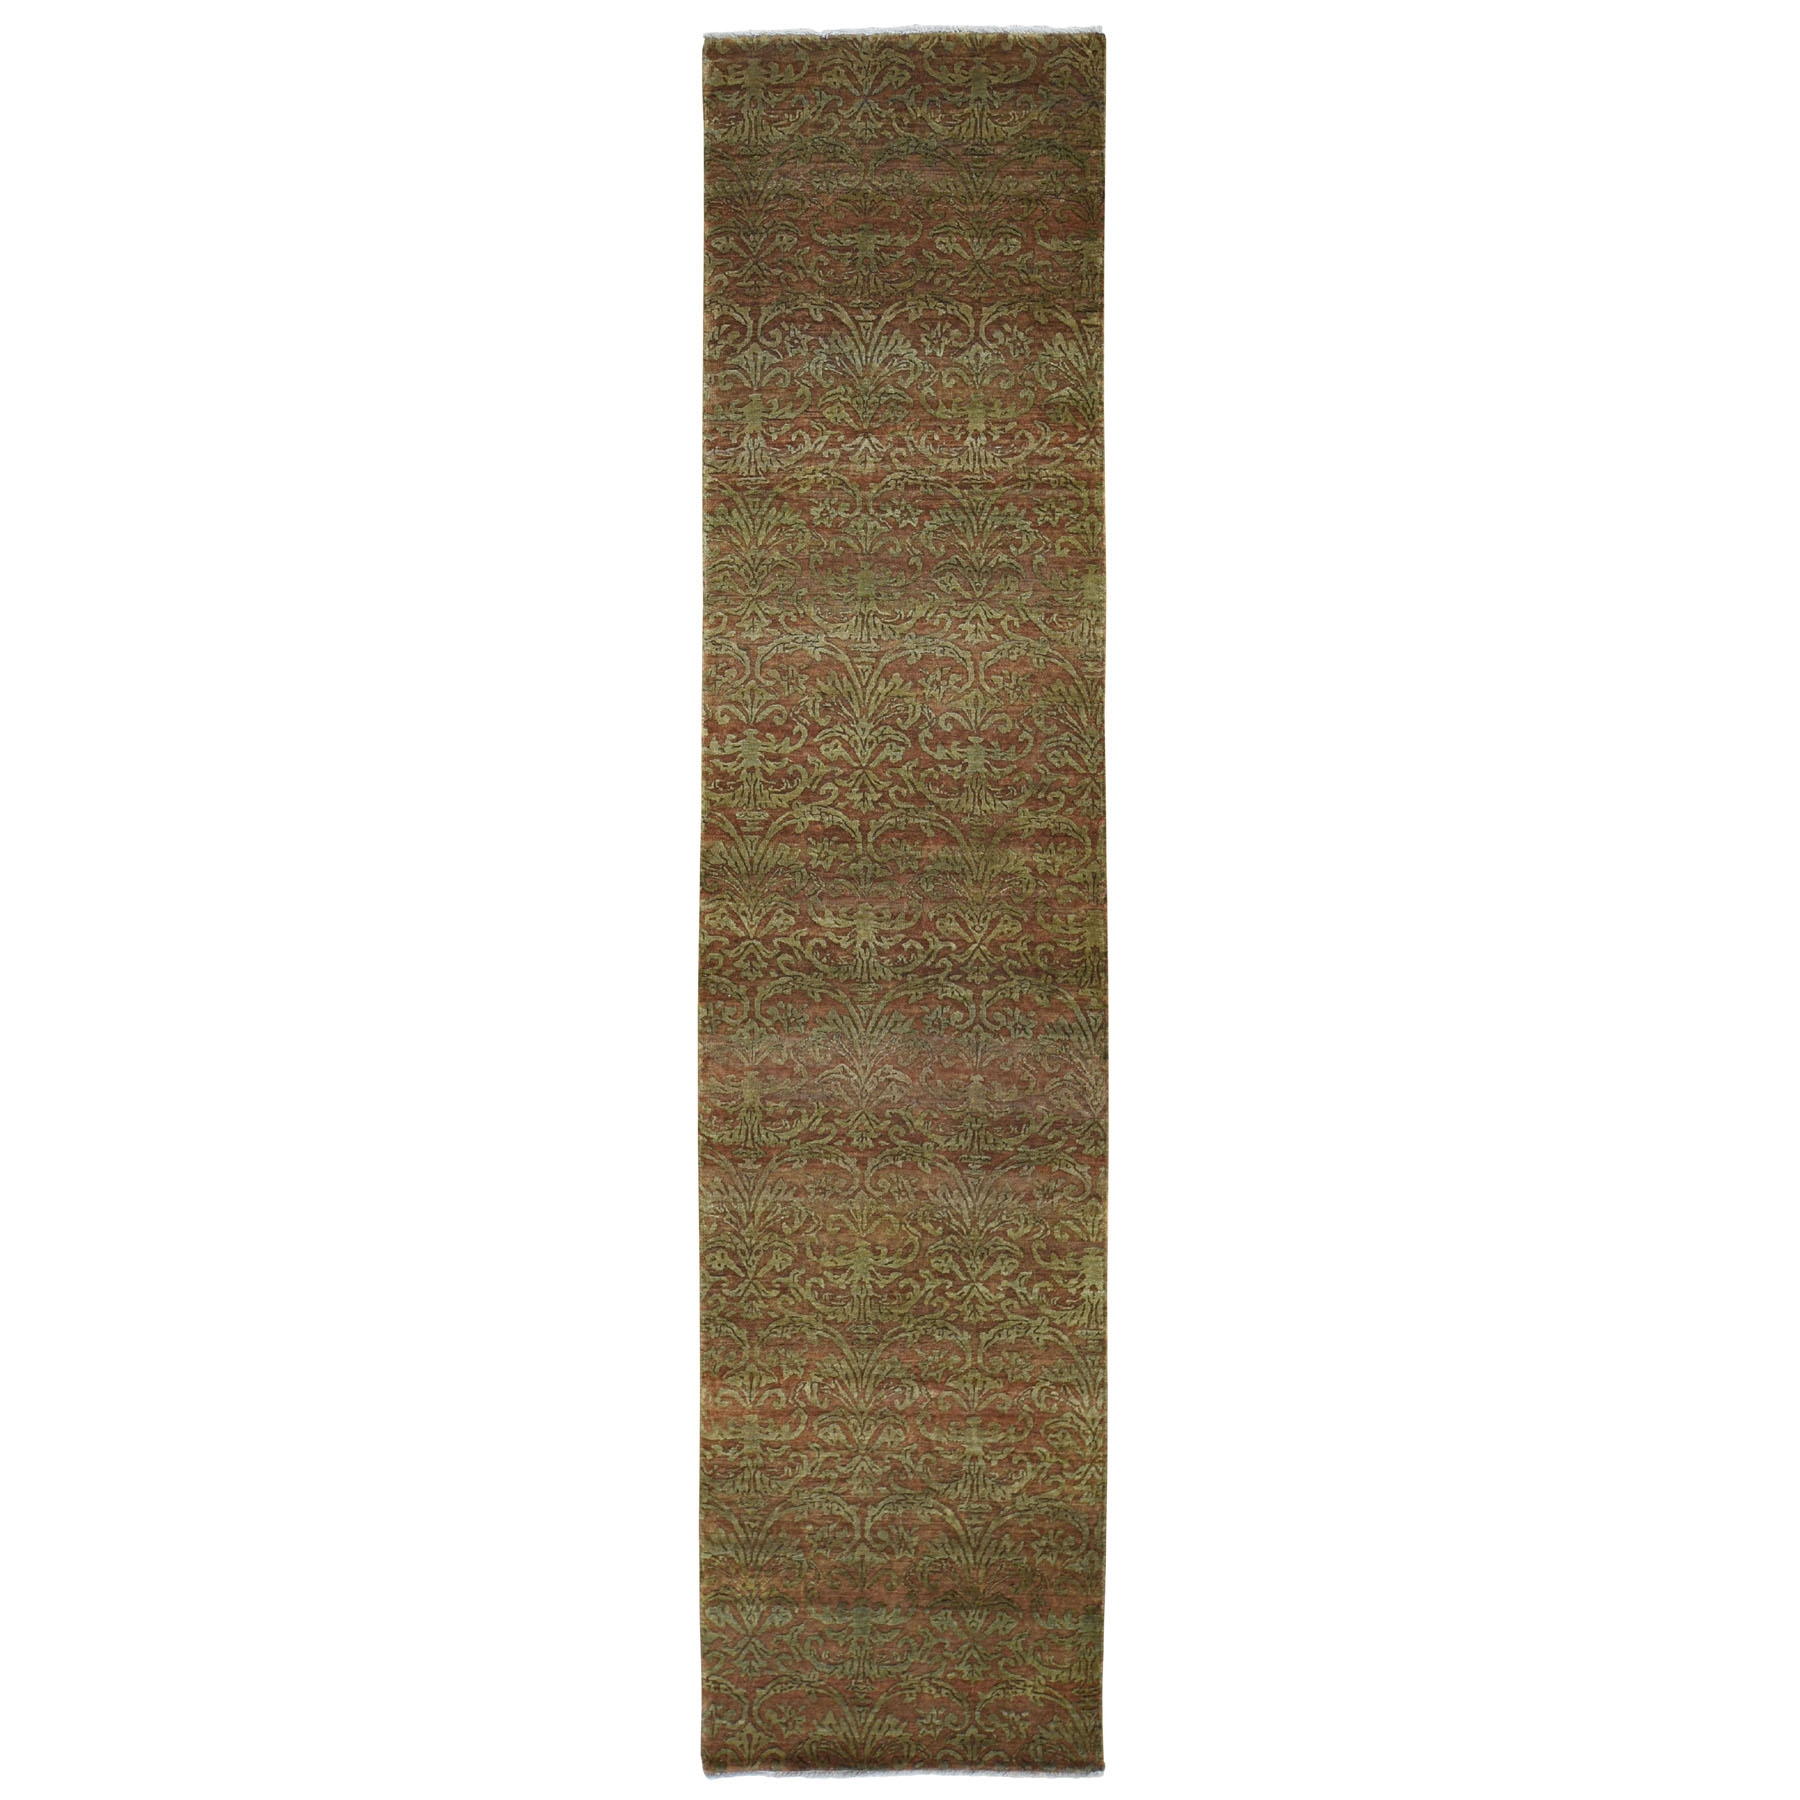 Mid Century Modern Collection Hand Knotted Brown Rug No: 0196020